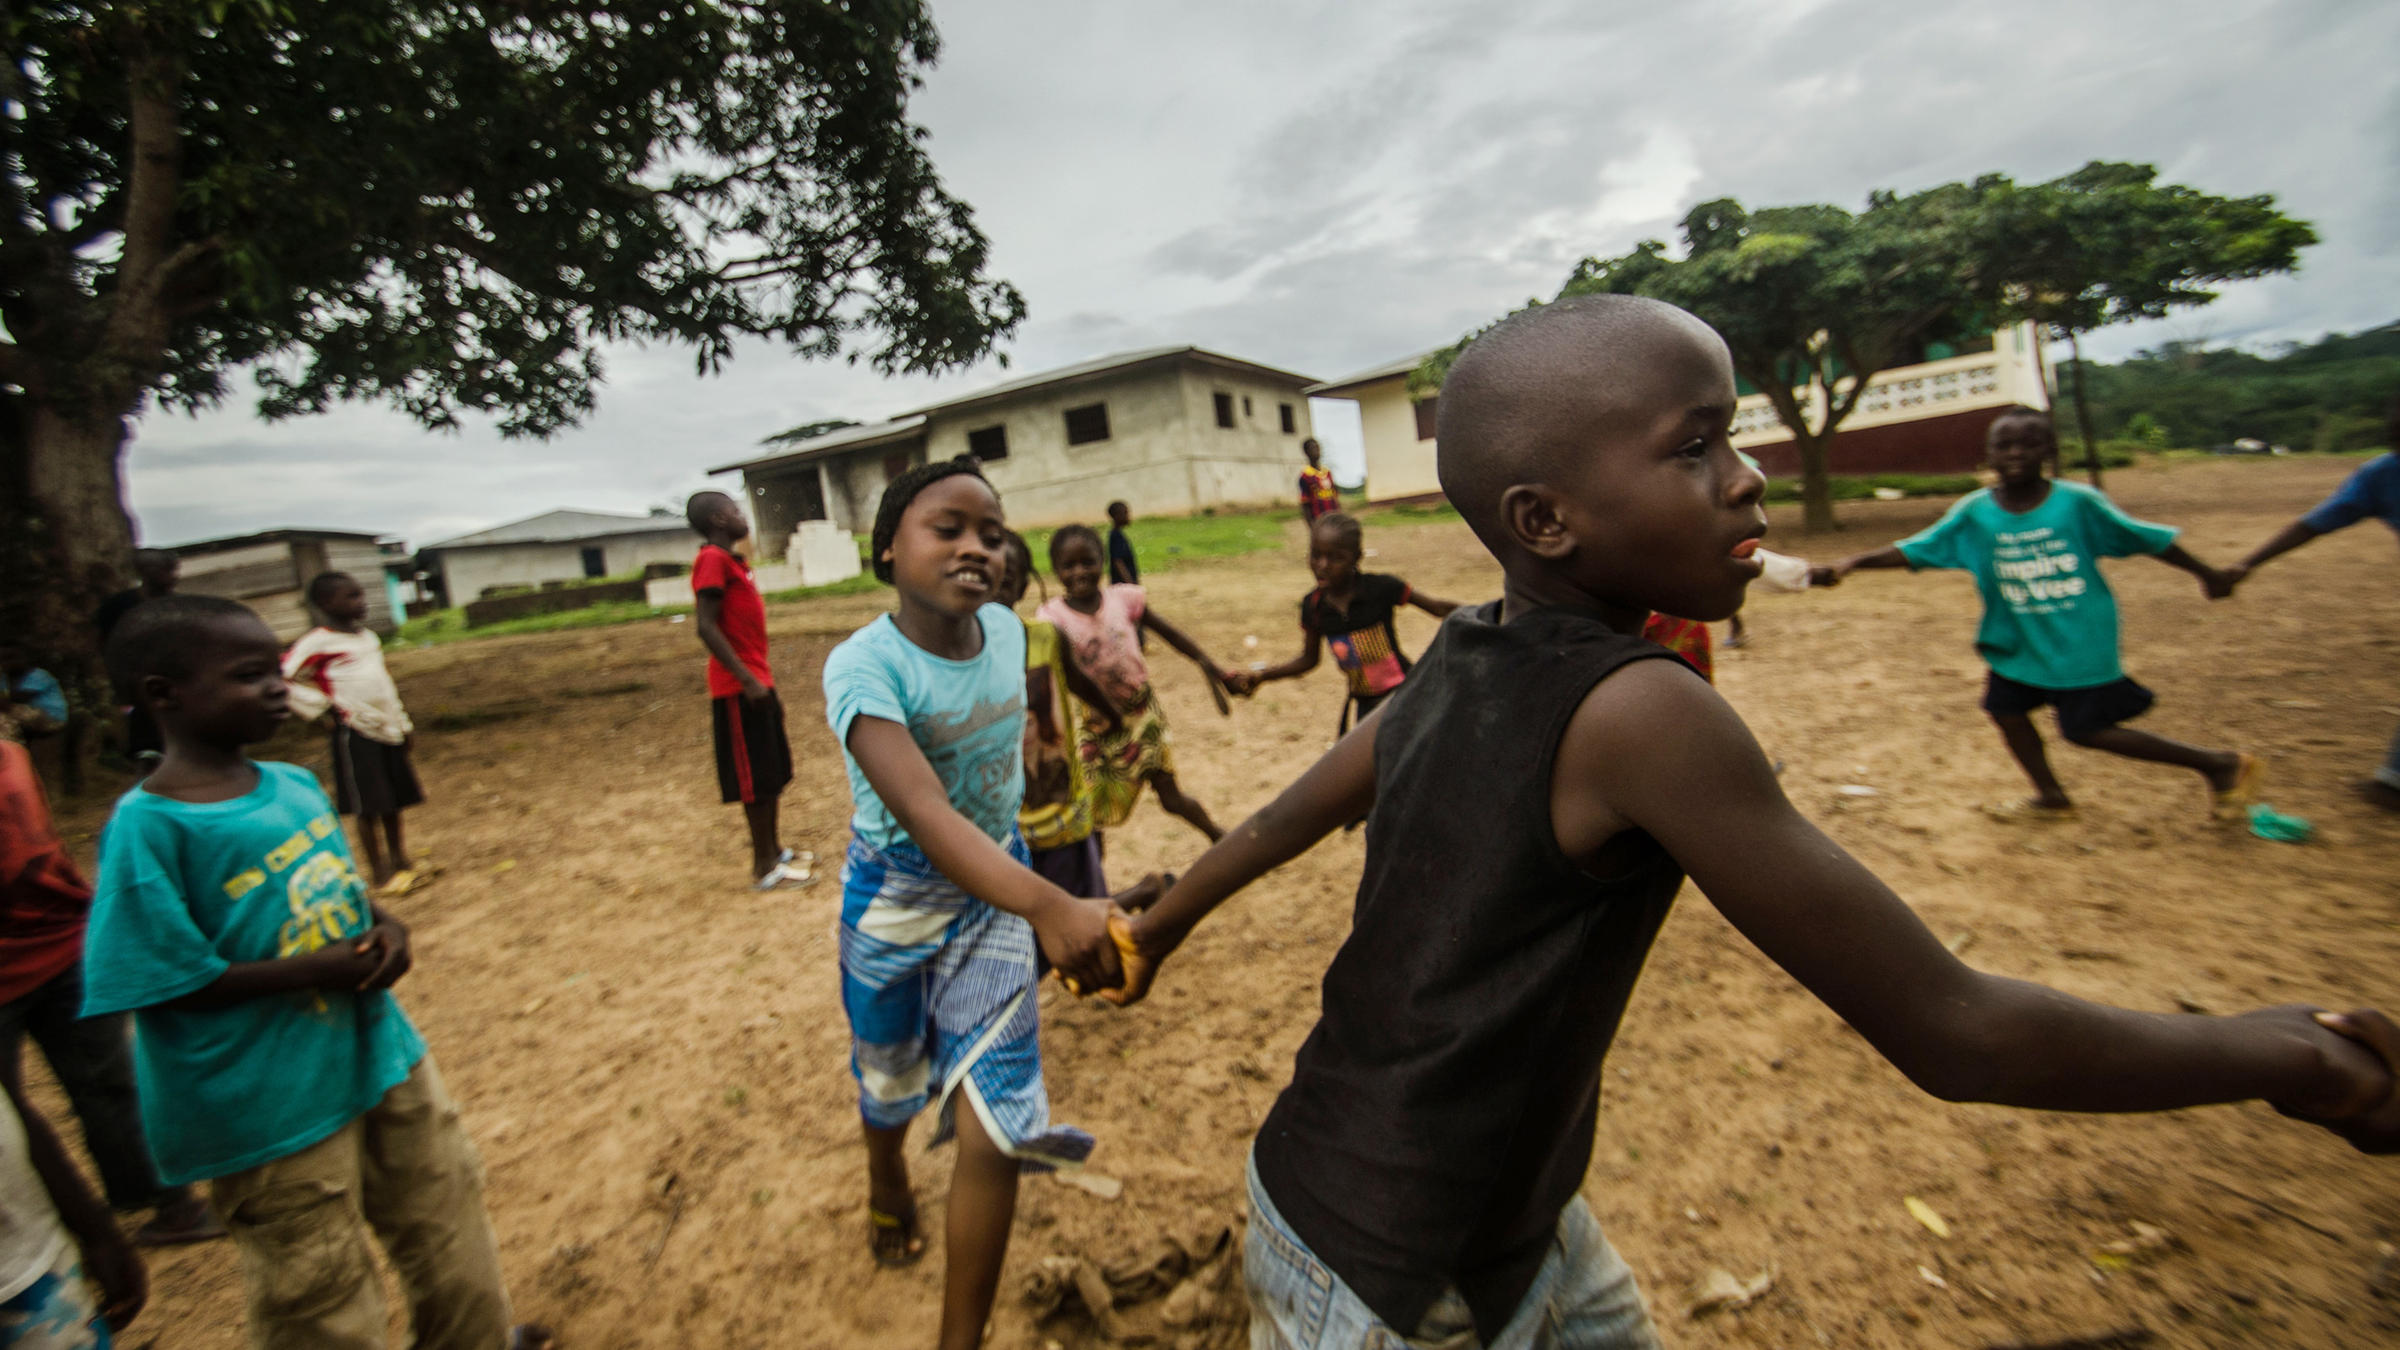 Mariama and Fomba Kanneh play in an open space in Barkedu, Liberia. With schools closed across the country, many kids spend their time playing outside every day